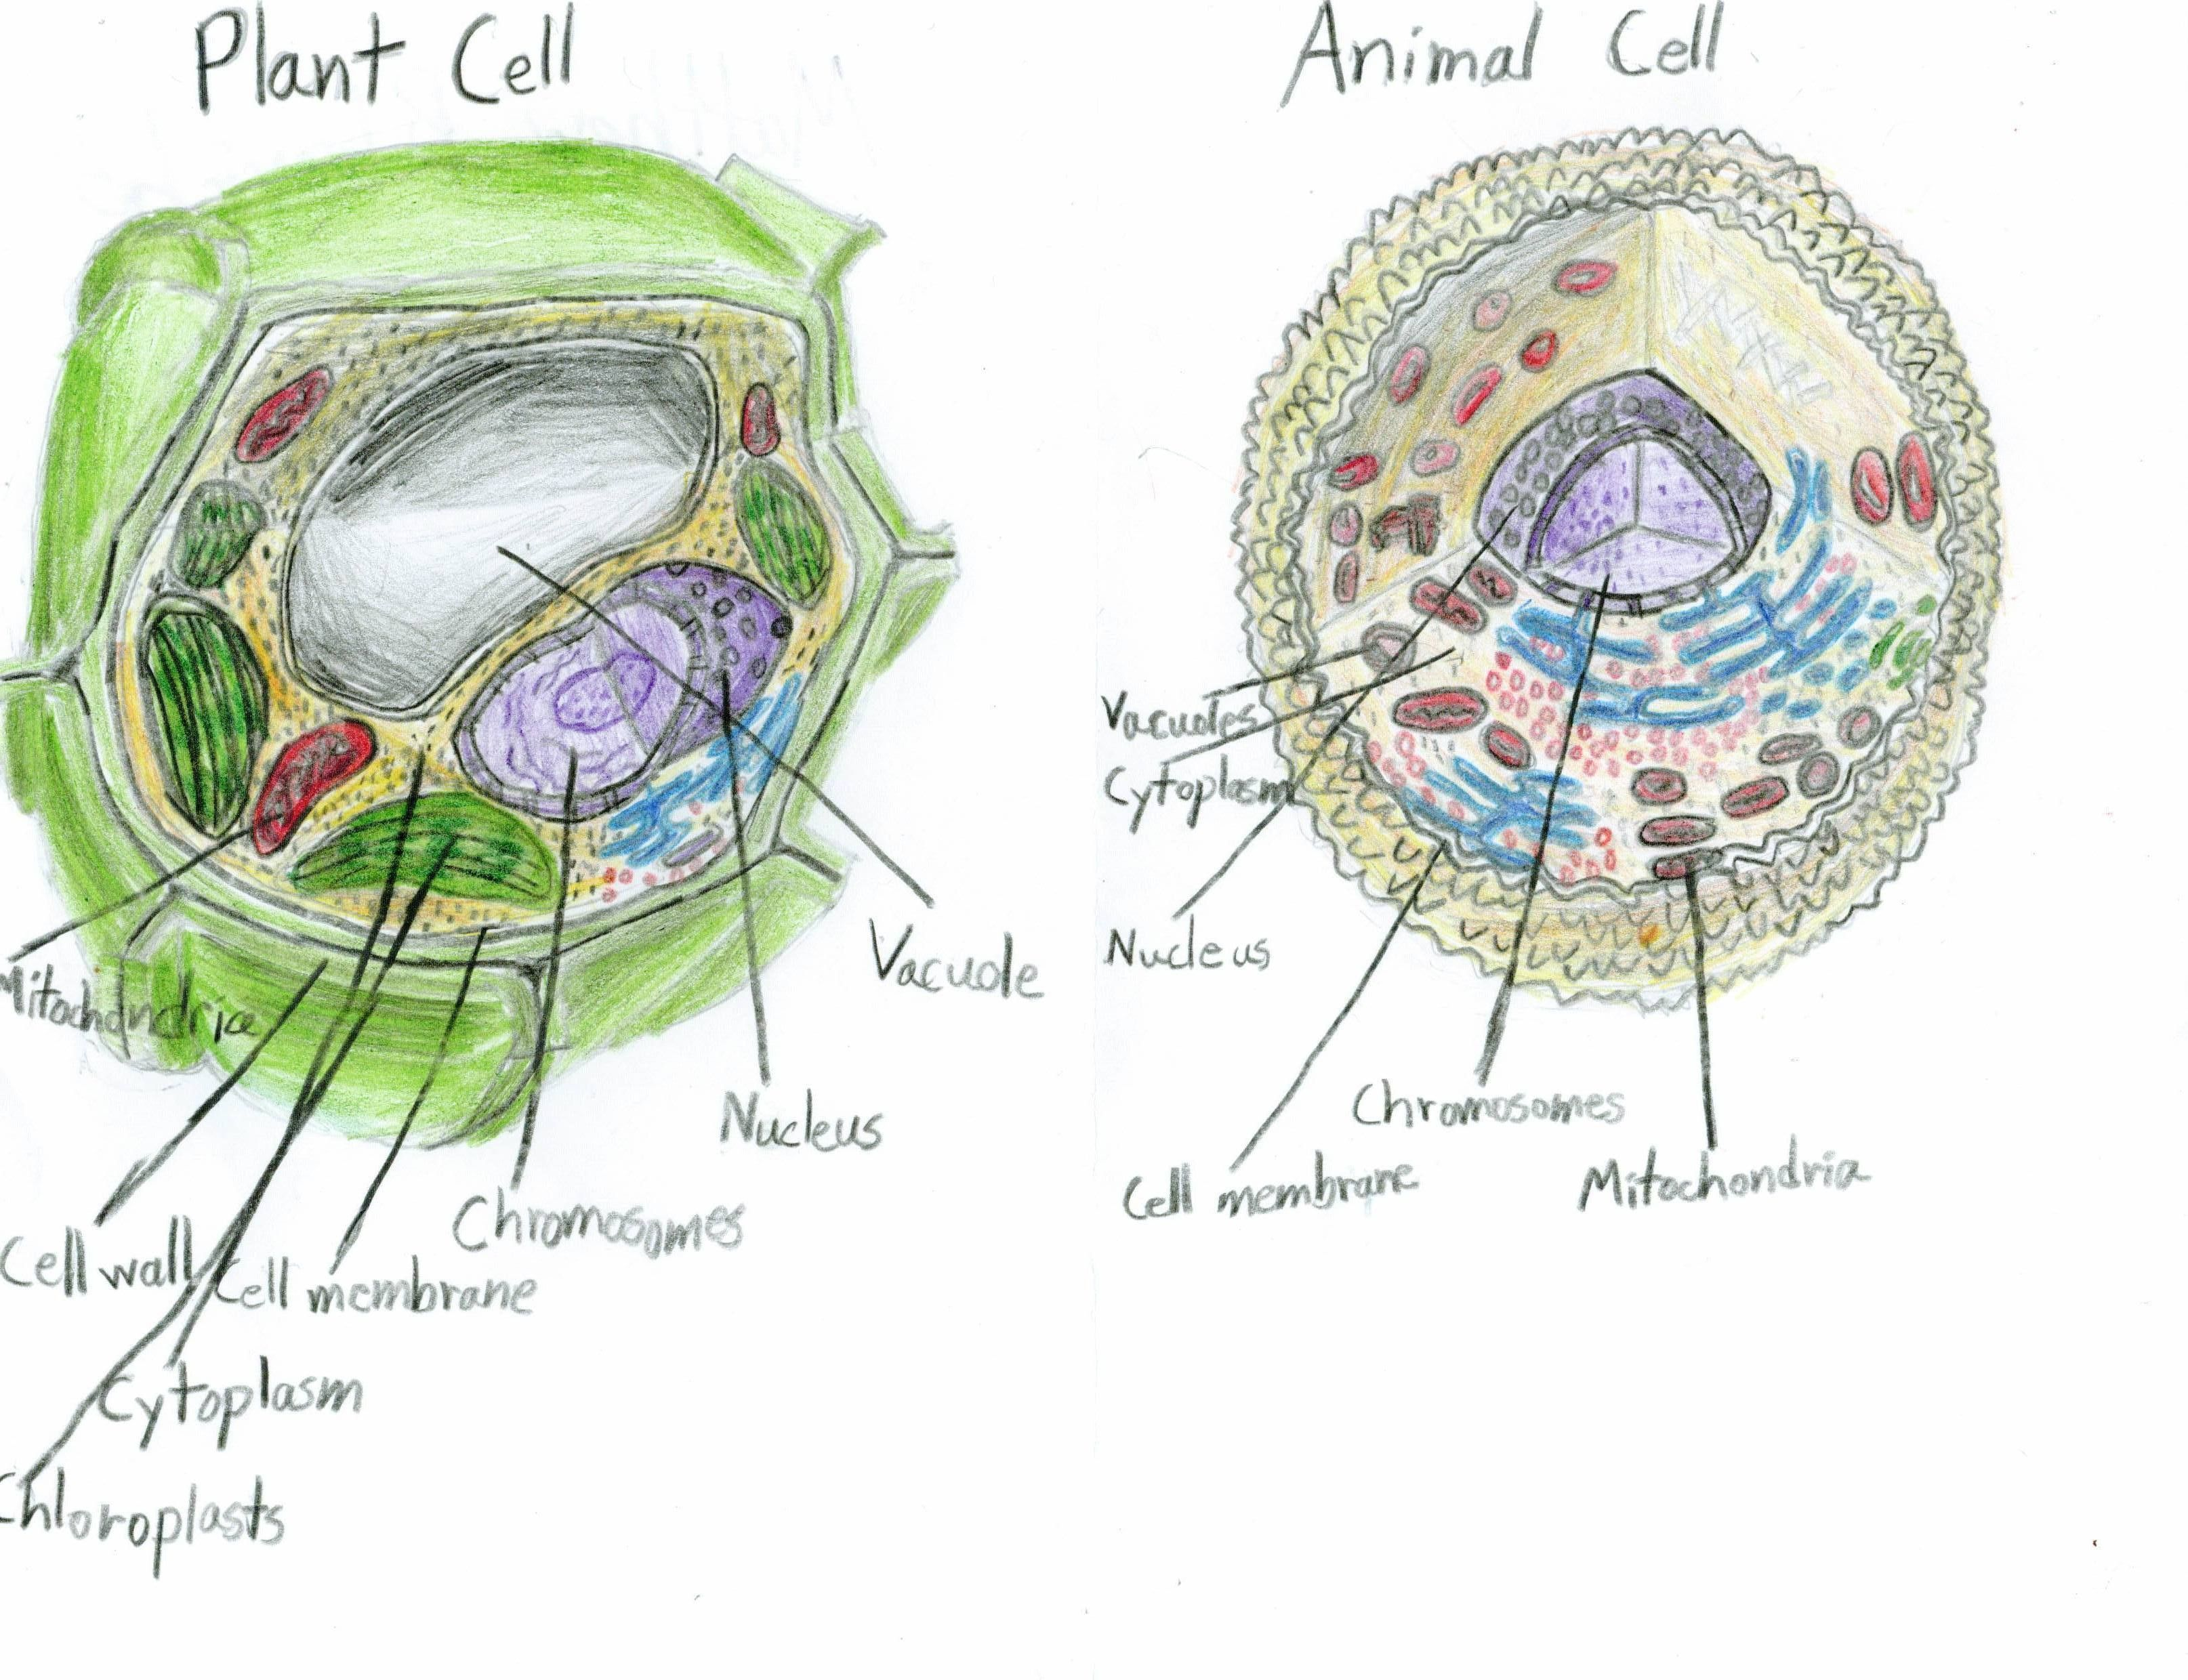 plant and animal cells diagram Plant and animal cells